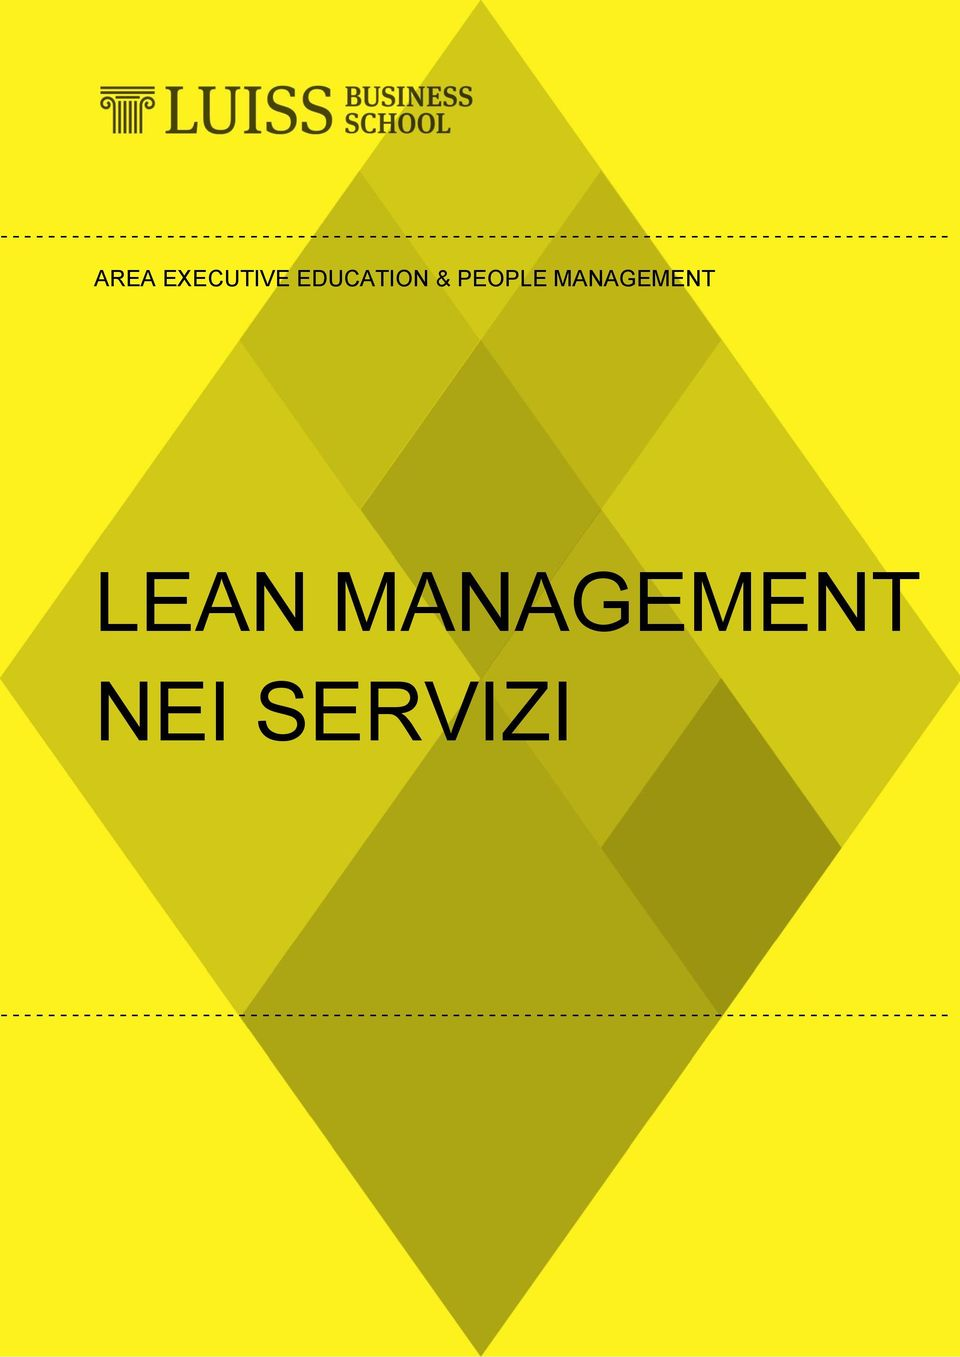 MANAGEMENT LEAN MANAGEMENT NEI SERVIZI  - - - - - - - - - - - - - - - - - - - - - - - - - - - - -